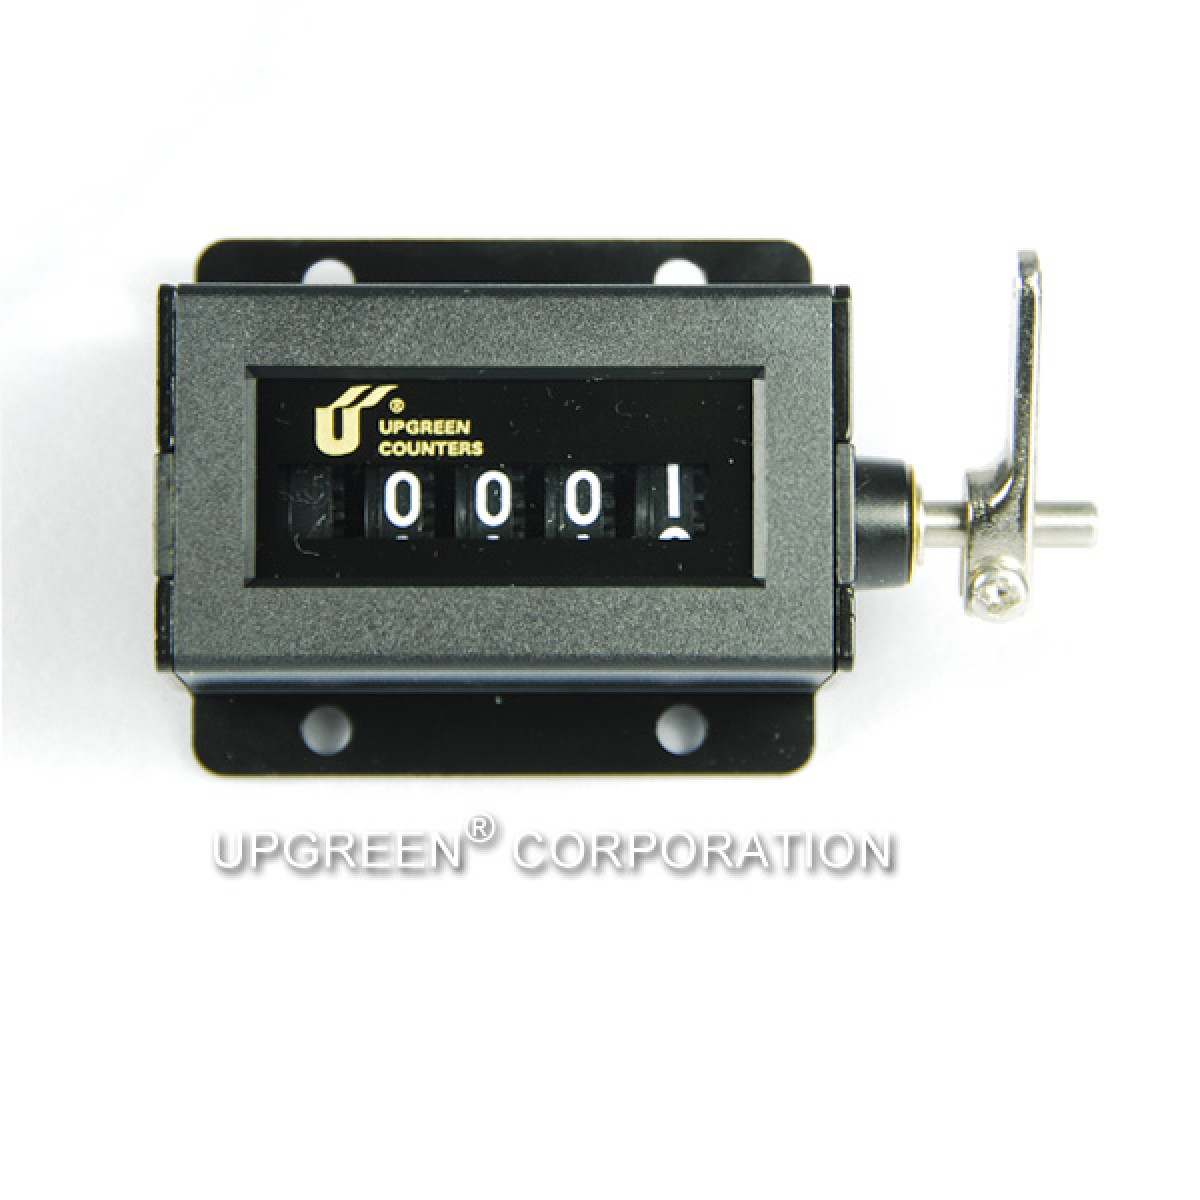 Premium Machine Counter LB-4N